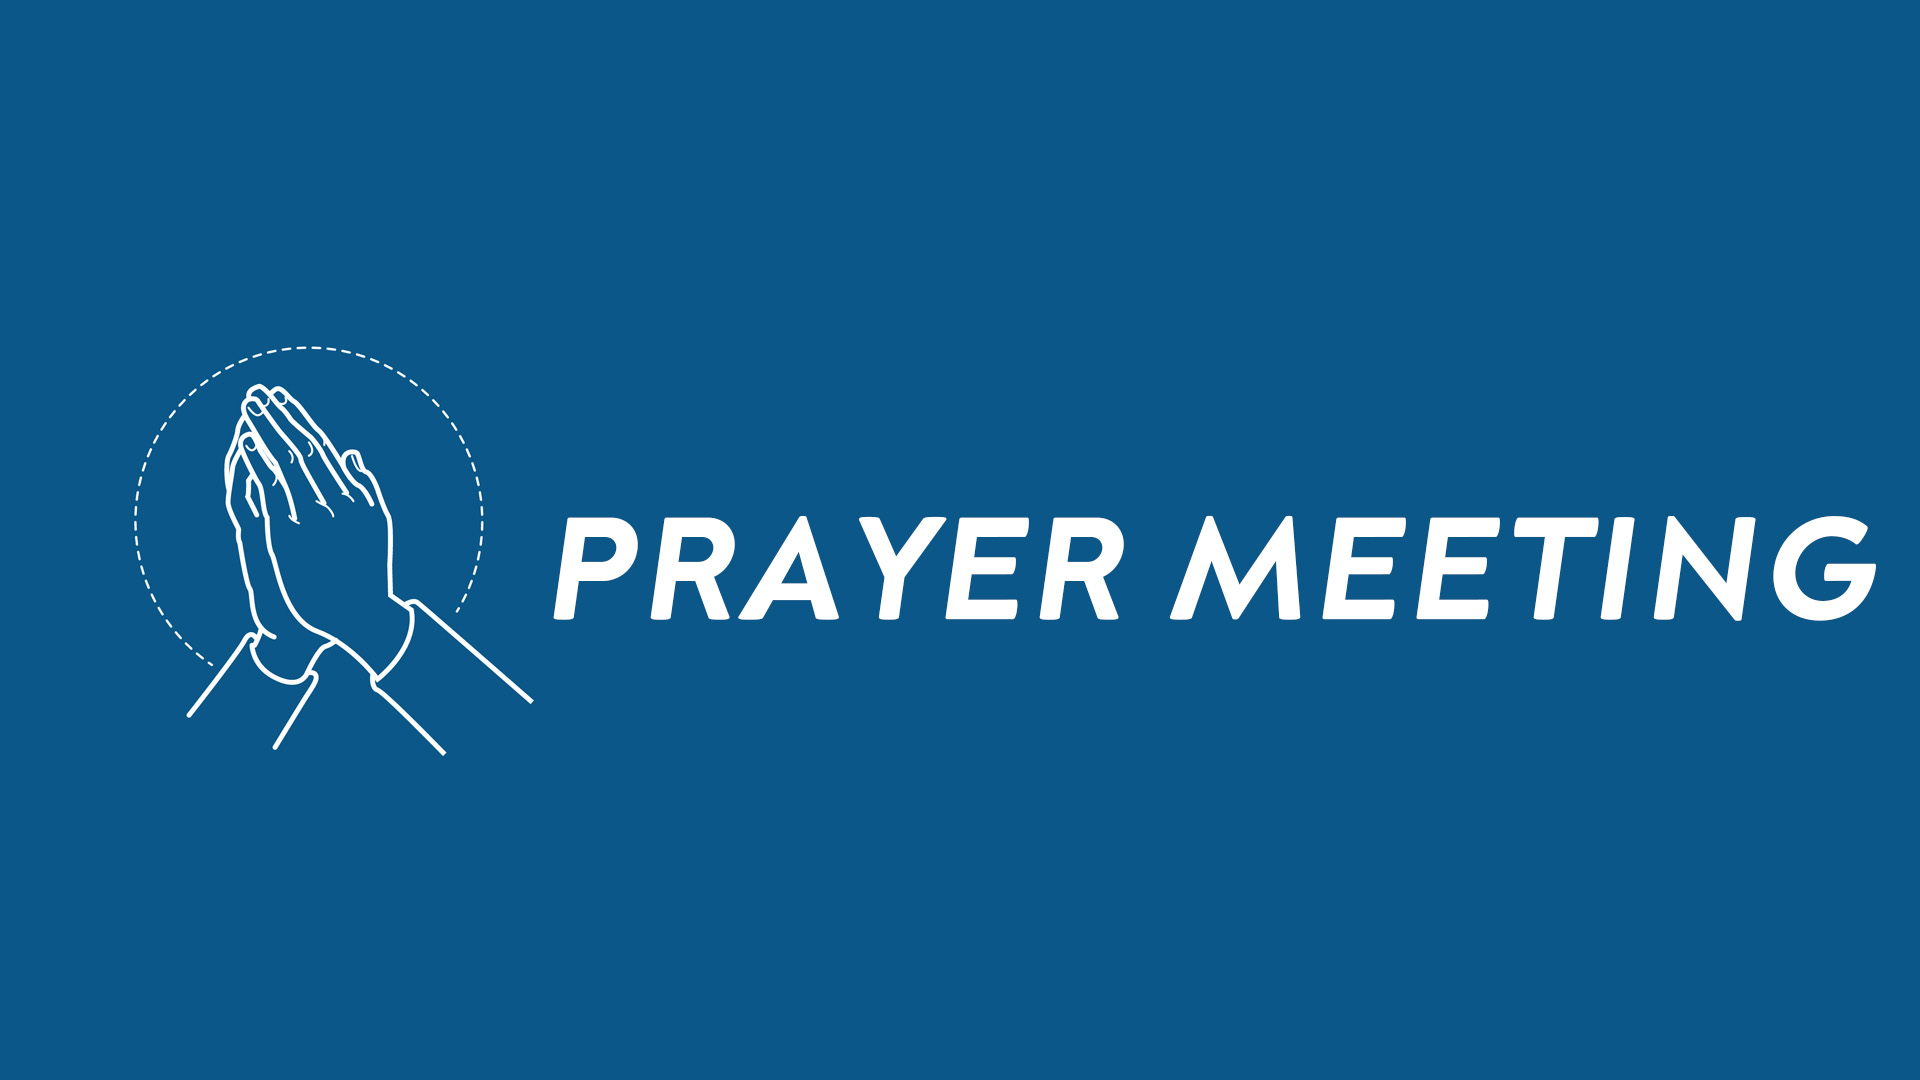 jpg-prayermeeting